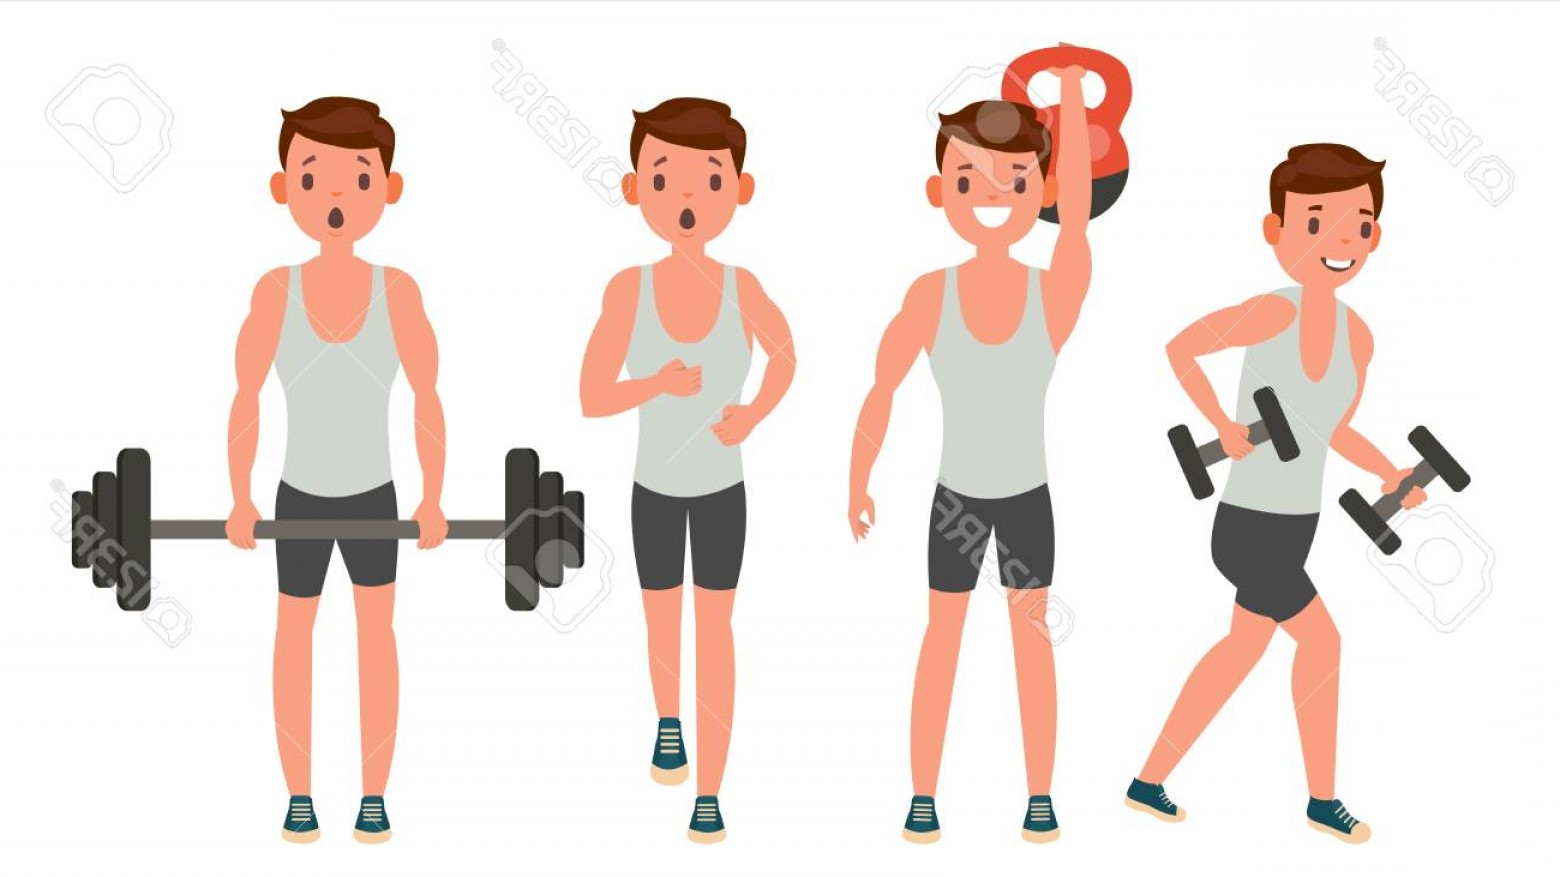 Man Vector Exercise: Photostock Vector Fitness Man Vector Different Poses Work Out Active Fitness Flat Cartoon Illustration